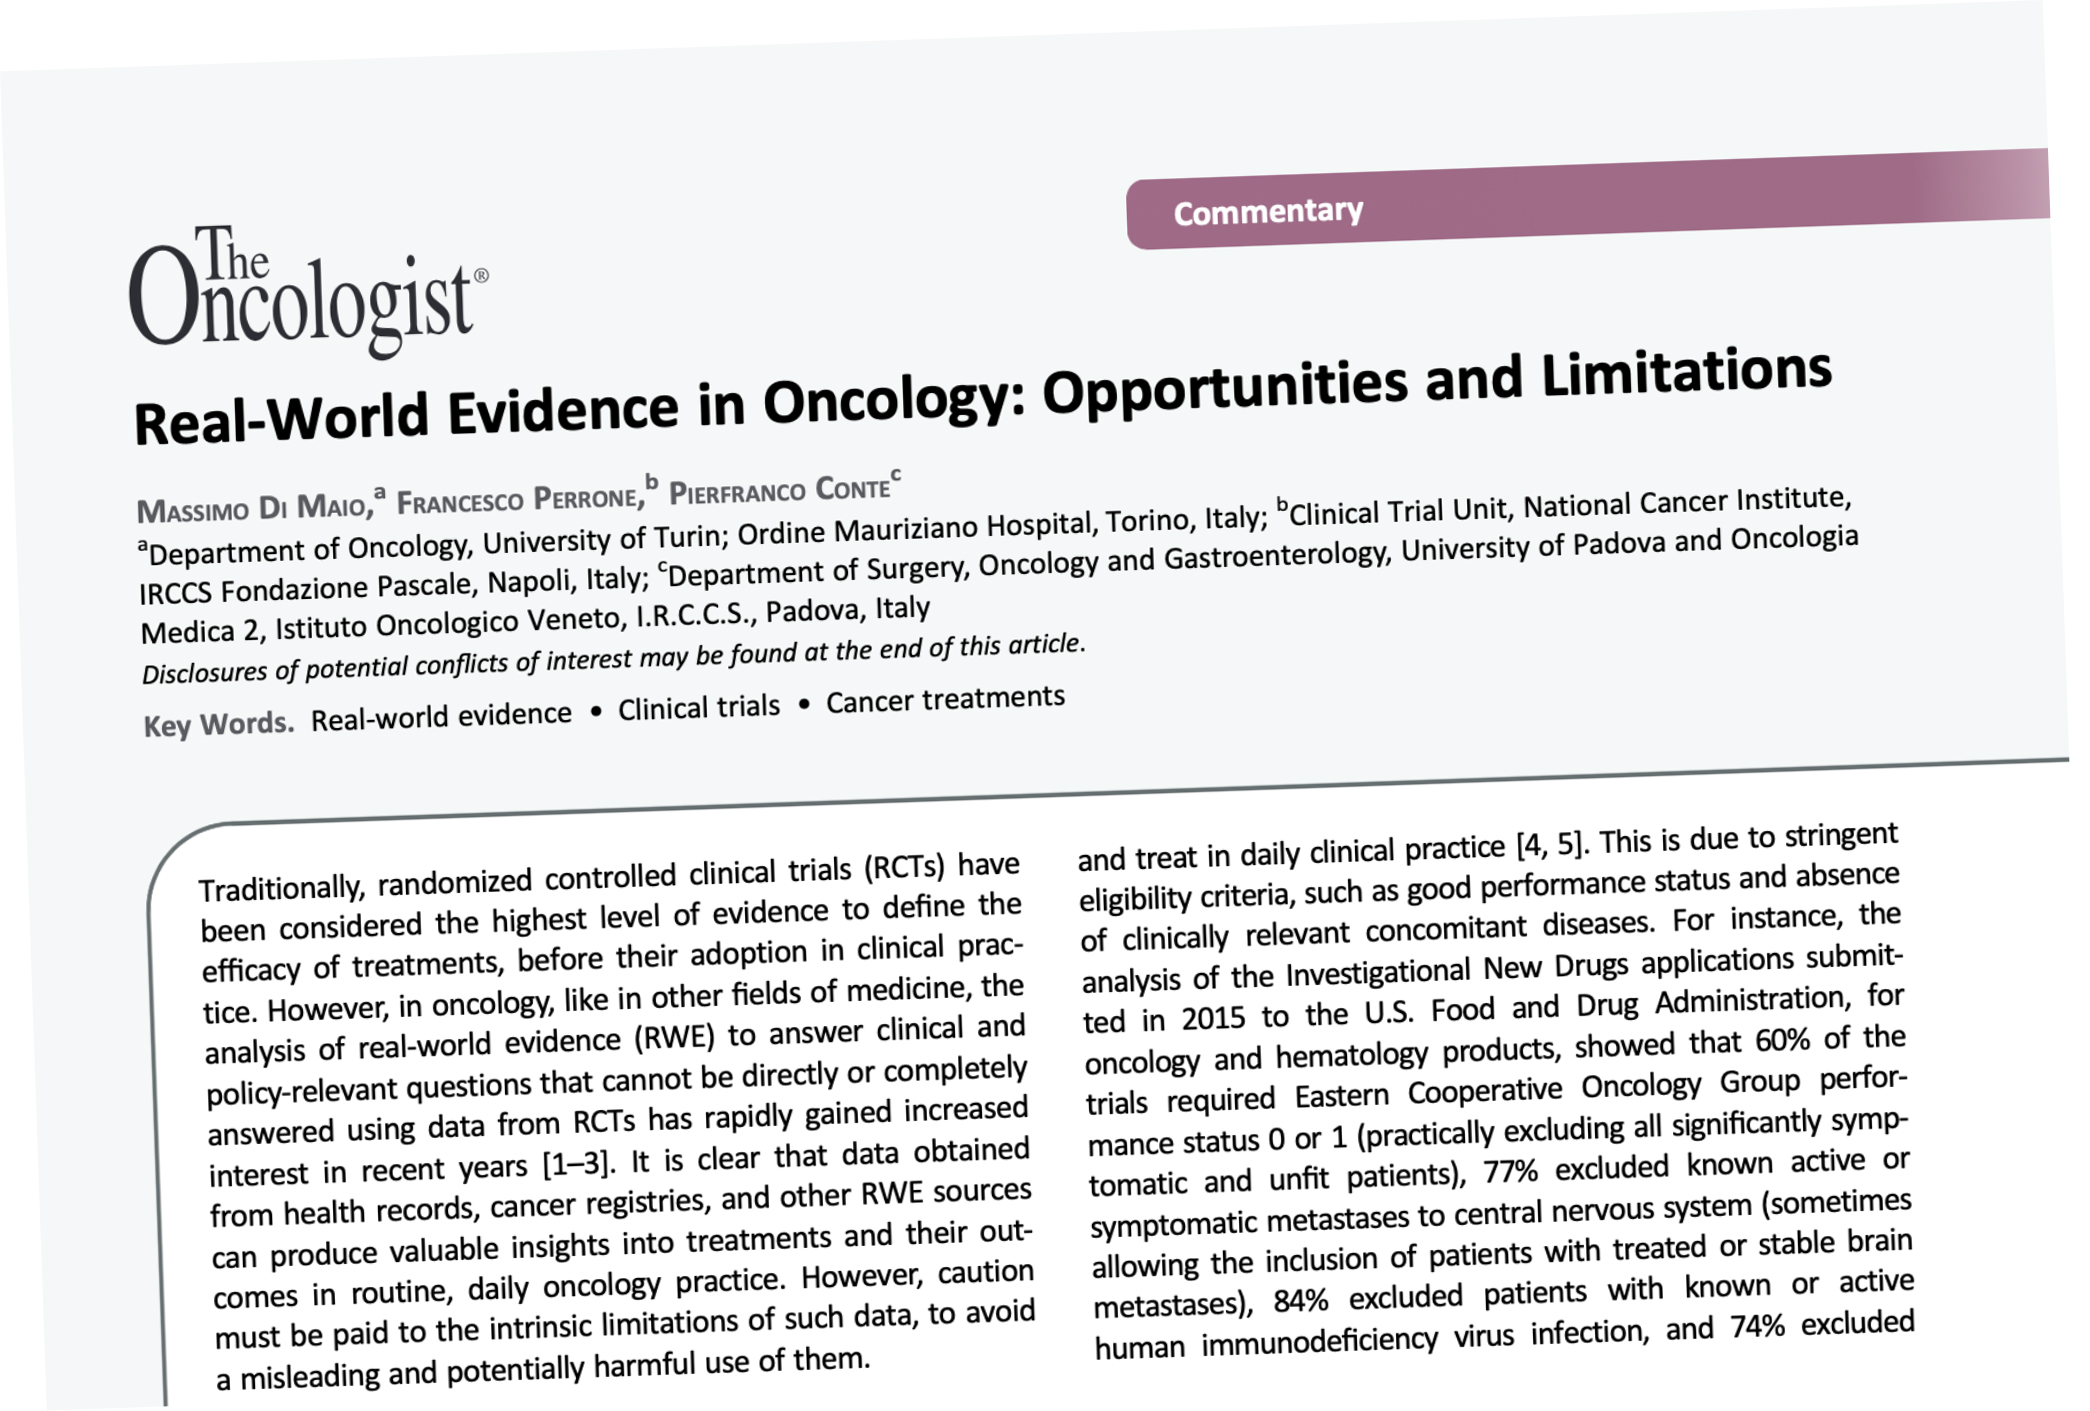 Real-world evidence in oncology has benefits (and risks)